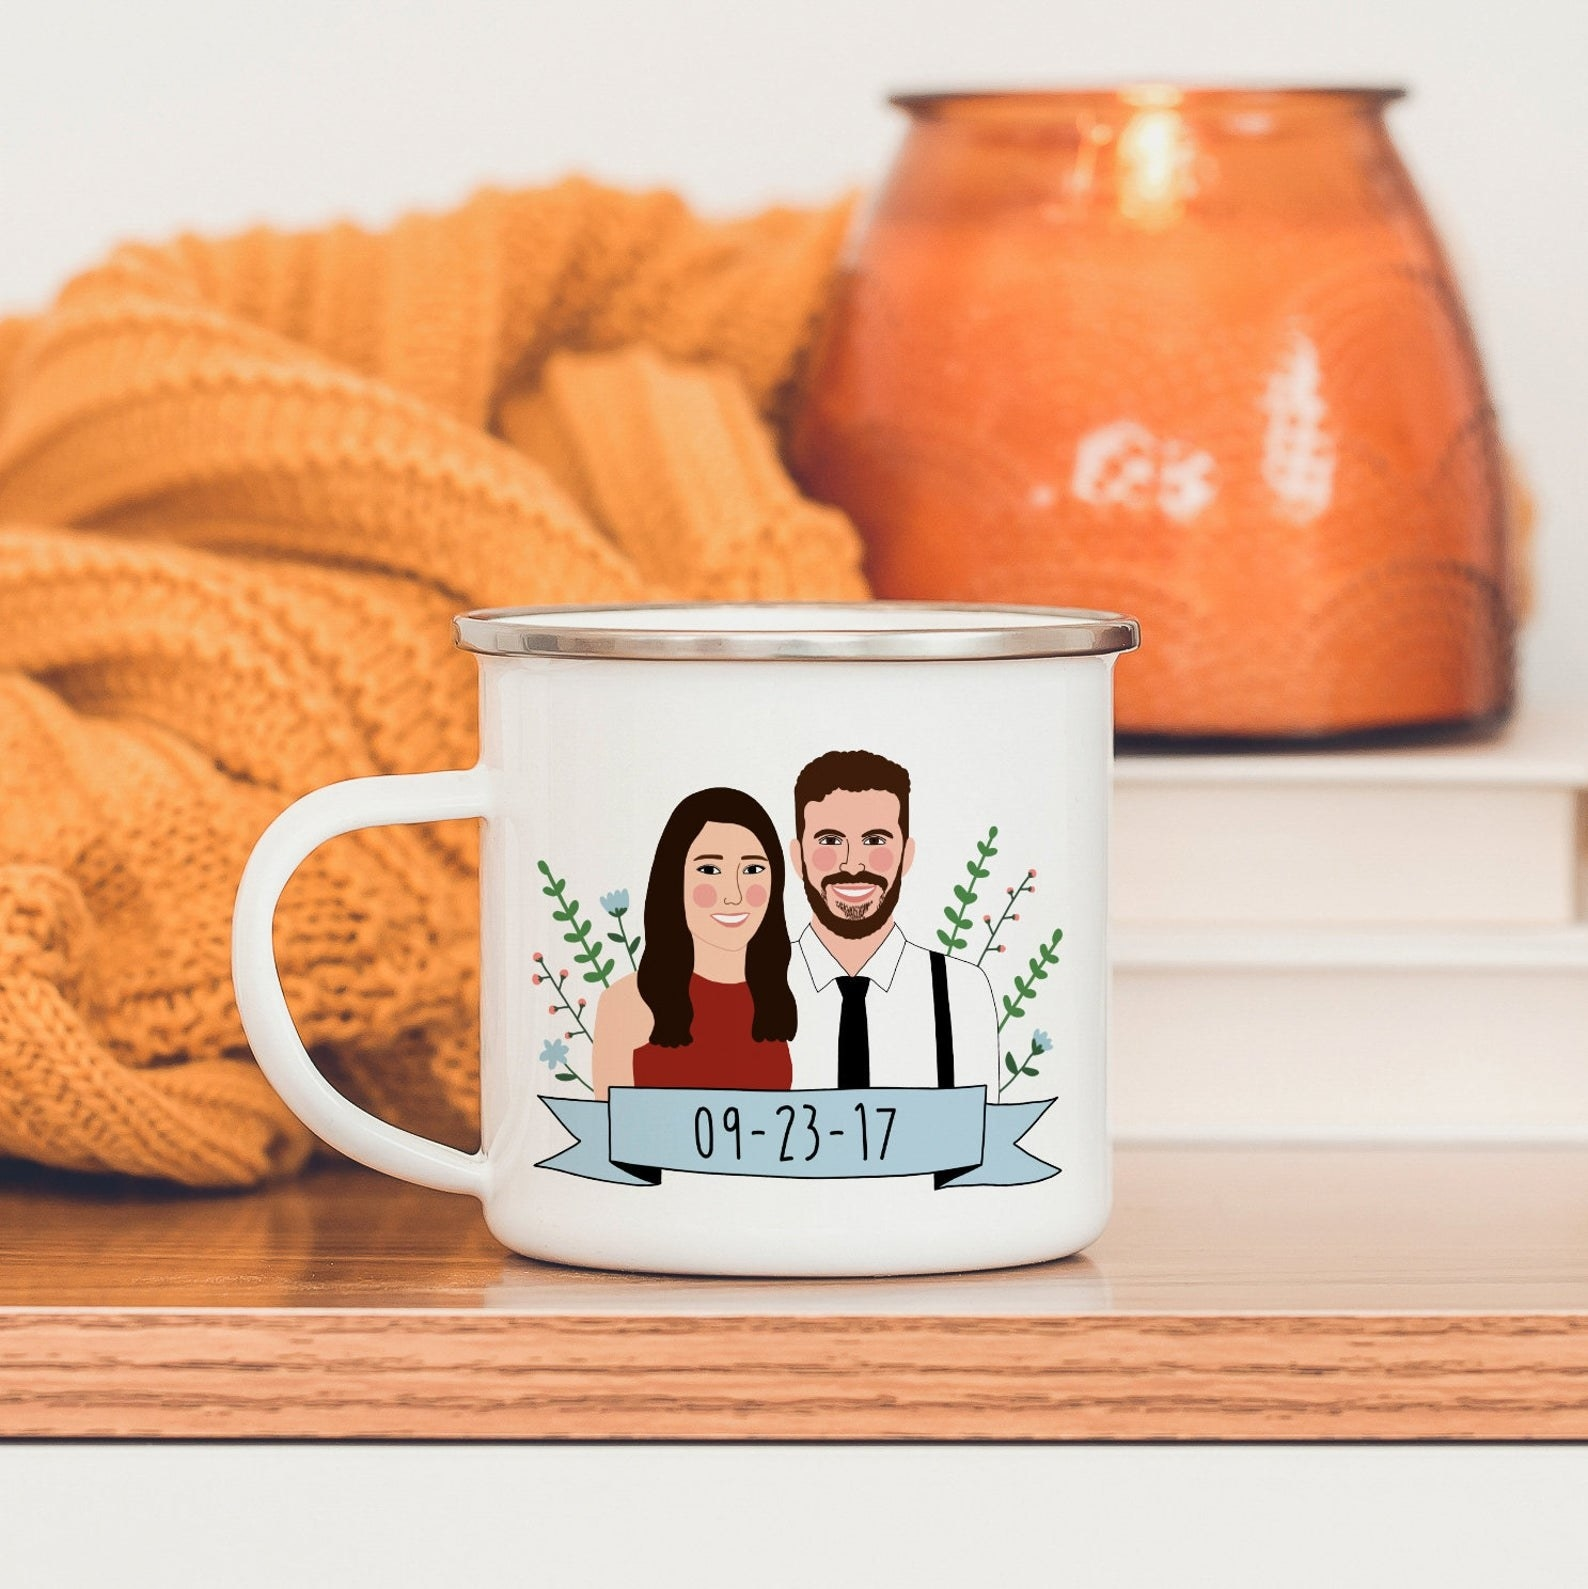 A white mug with an illustration of two people and a wedding date